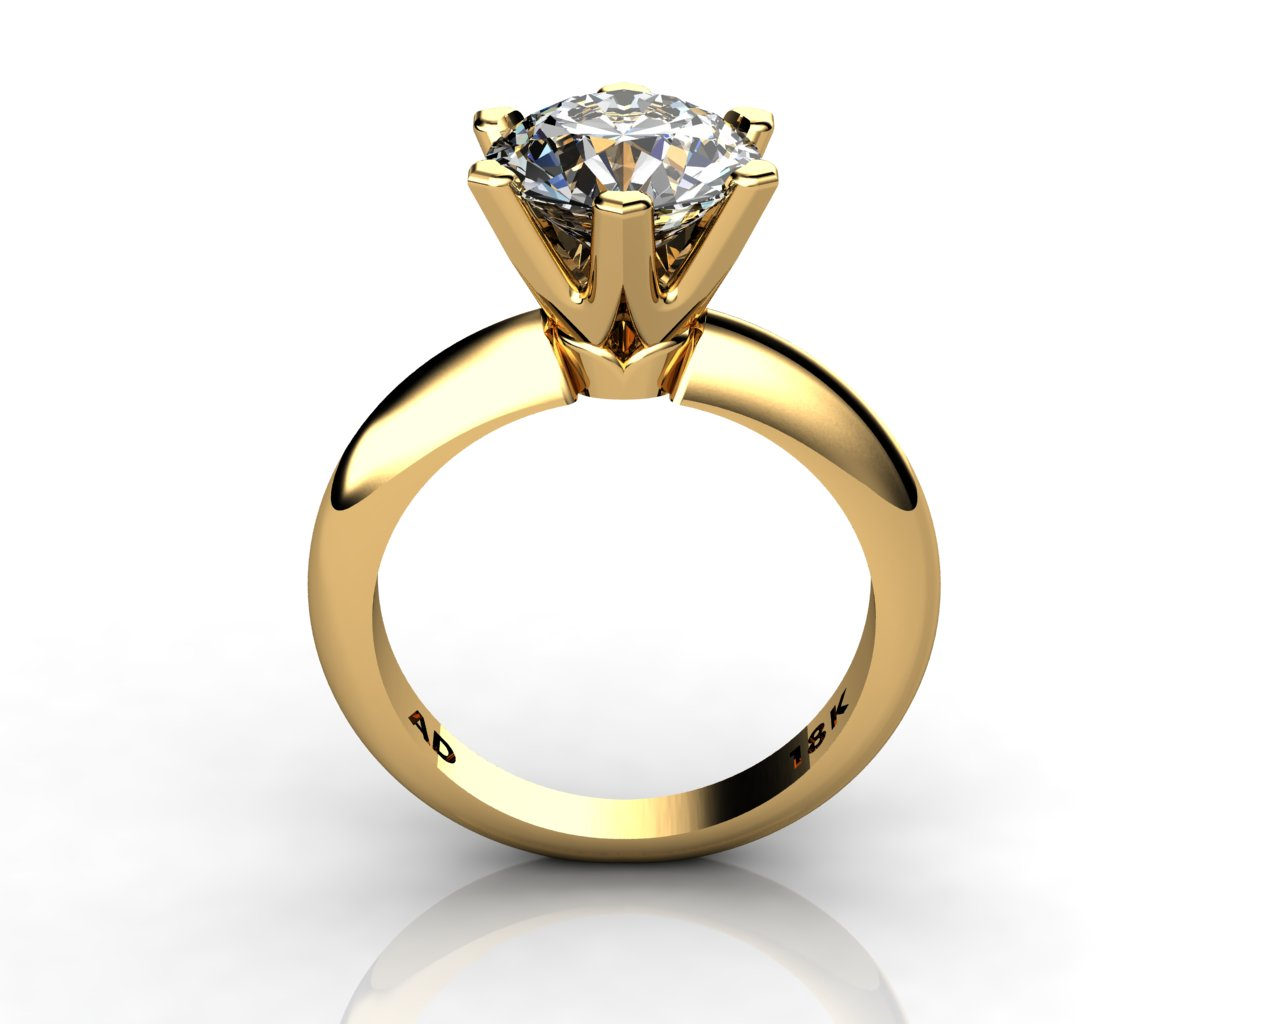 Diamond Solitaire Engagement Ring Round Cut 250ct Diamond 6 PRONGS 6gr 18kt Yellow Gold